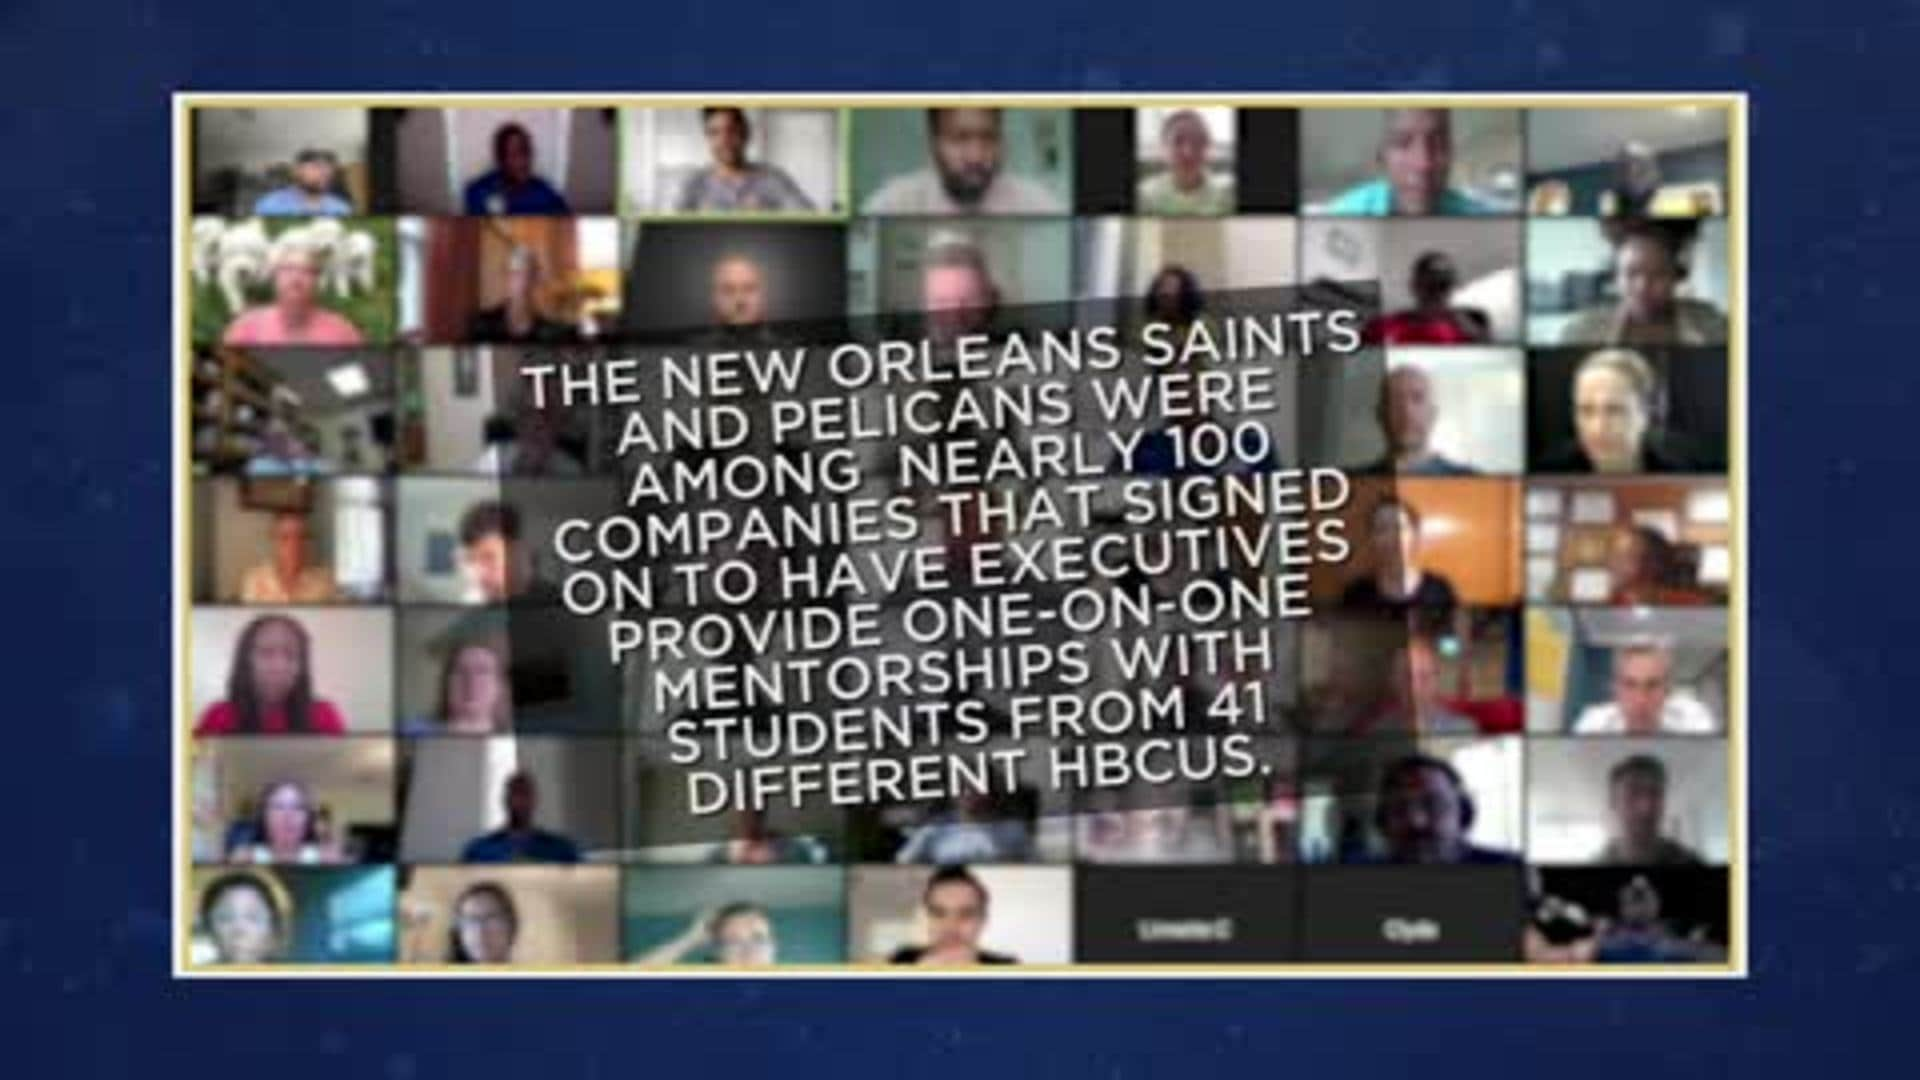 The Pelicans join forces with HBCU Office Hours